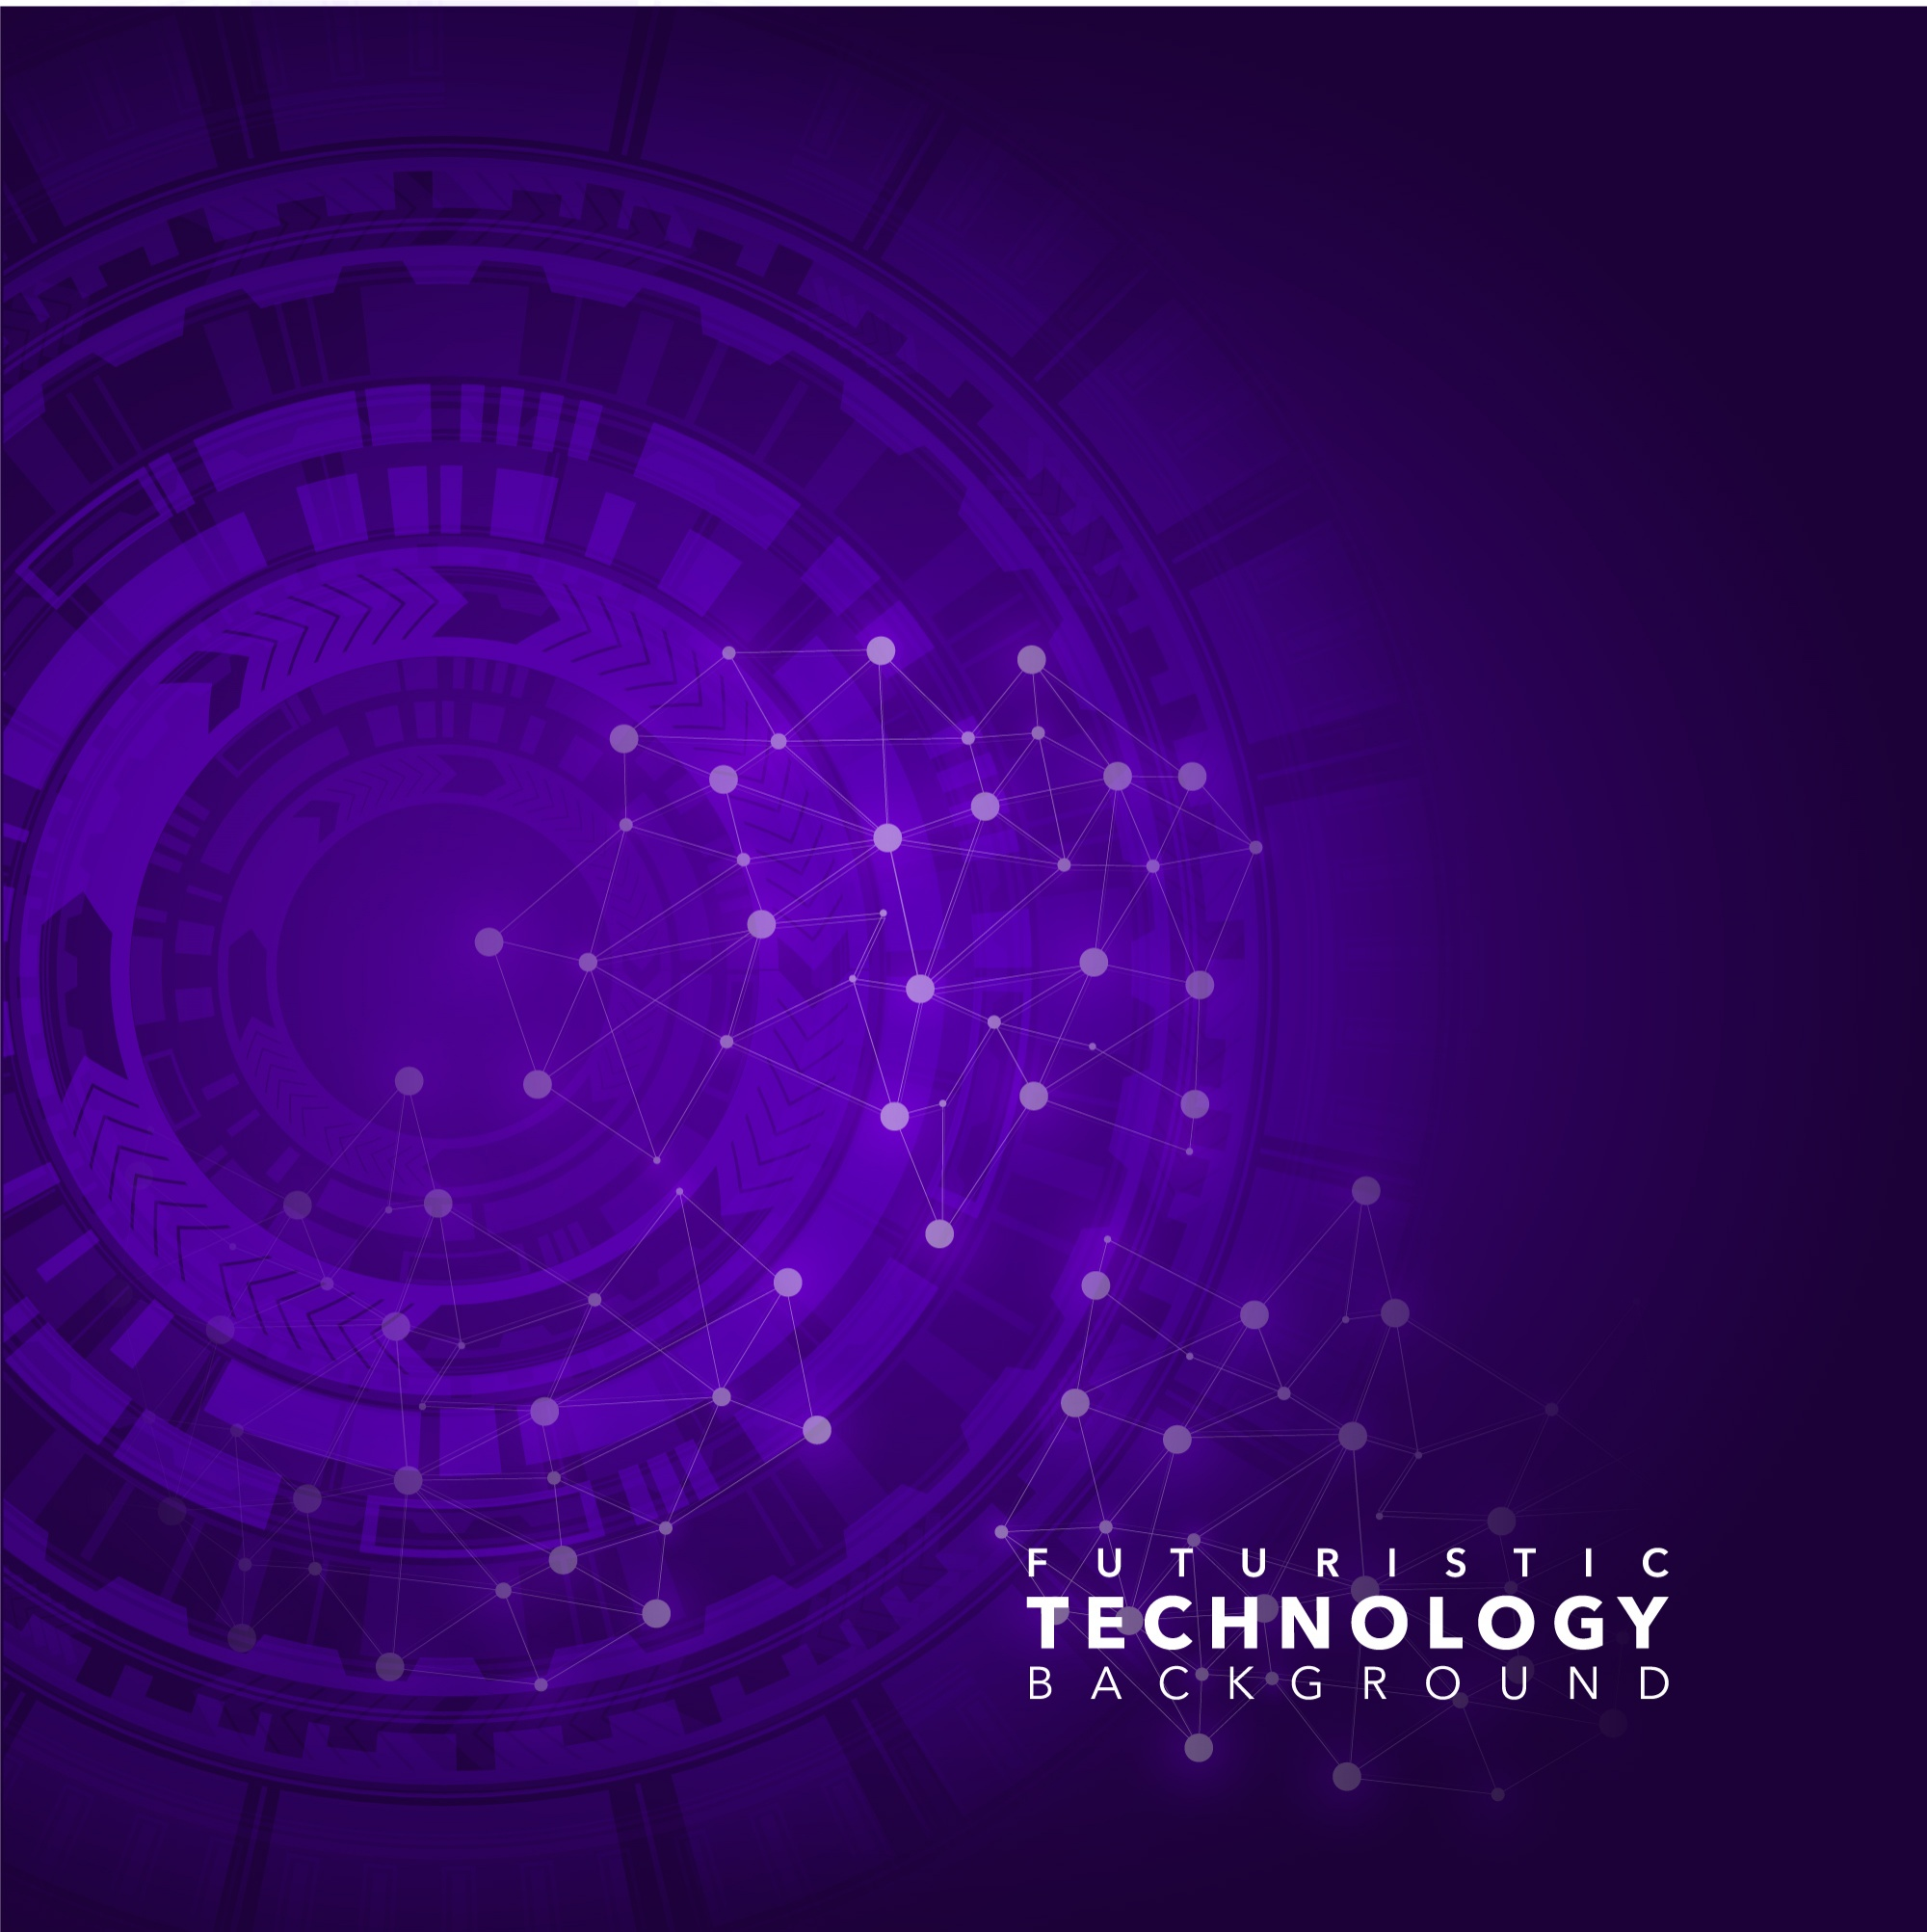 Purple technological background